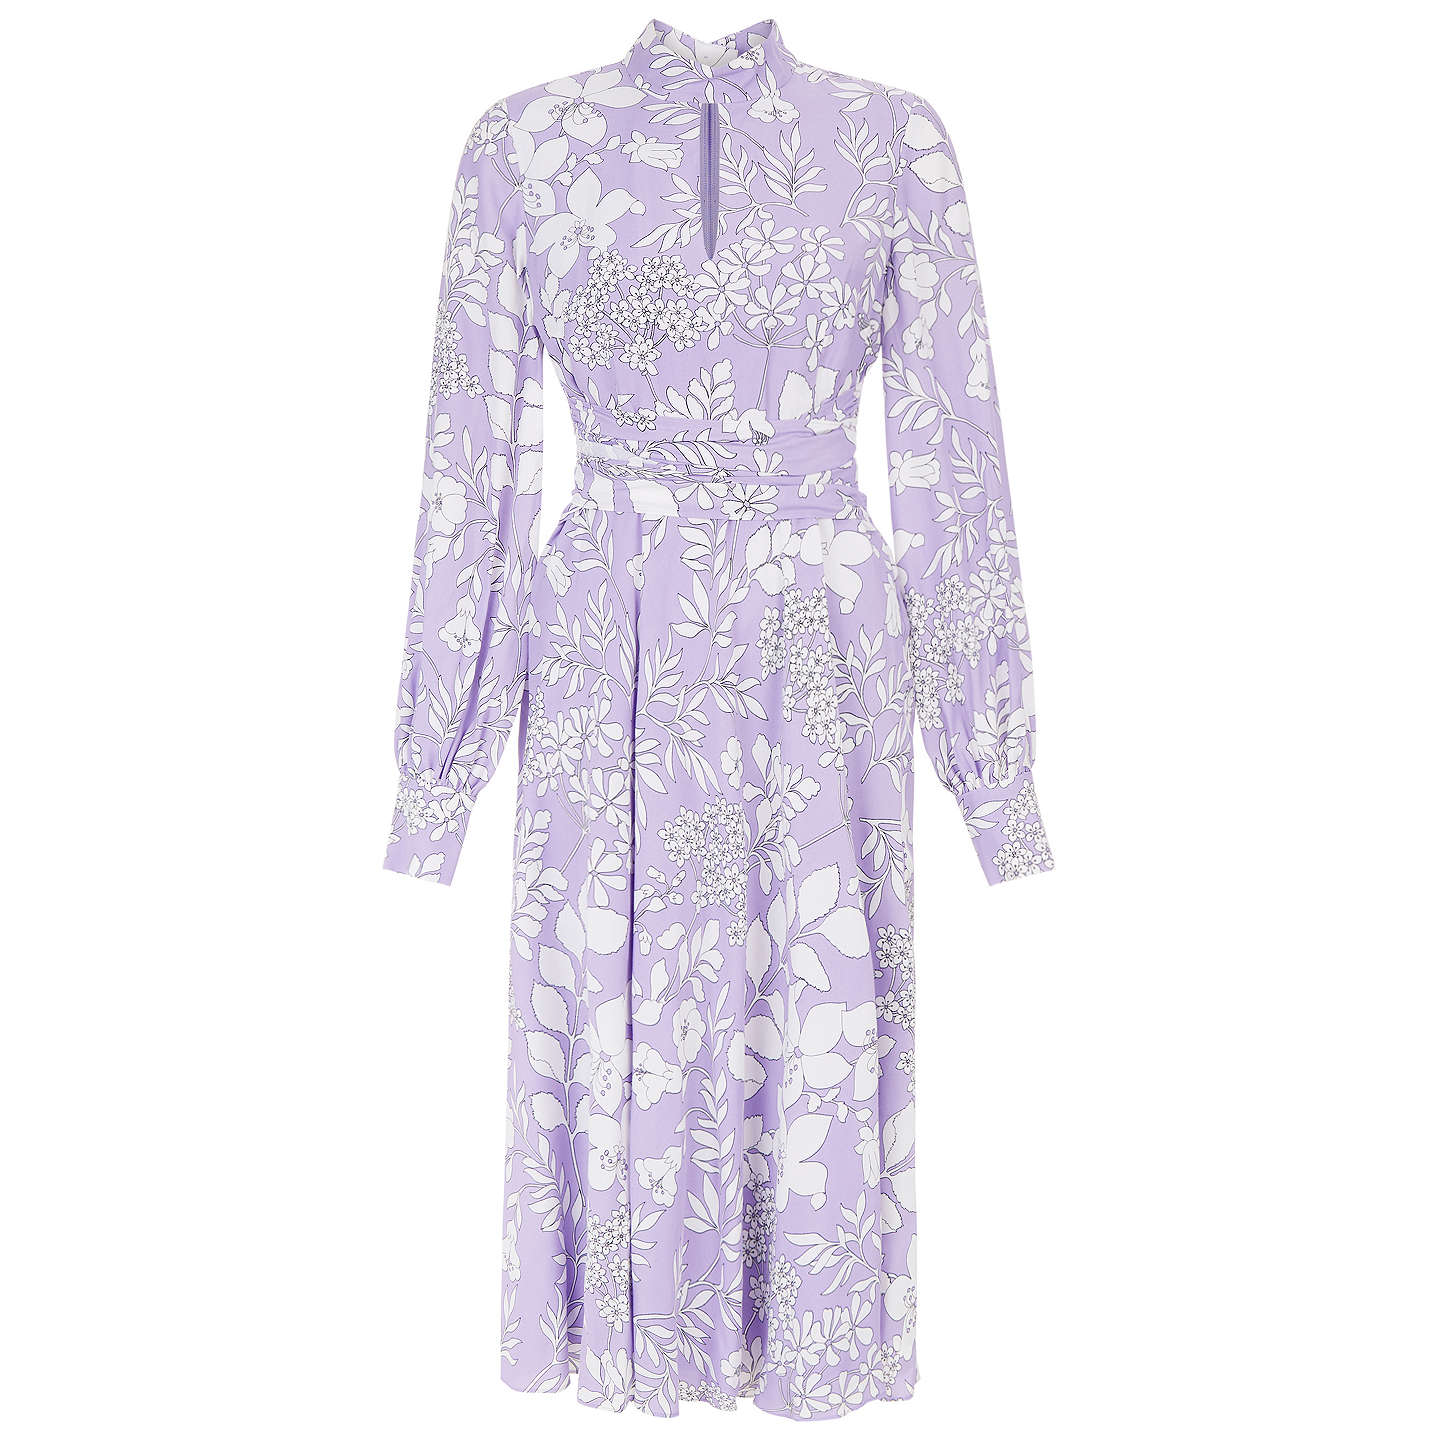 BuyHobbs Silvia Midi Dress, Lilac/White, 8 Online at johnlewis.com